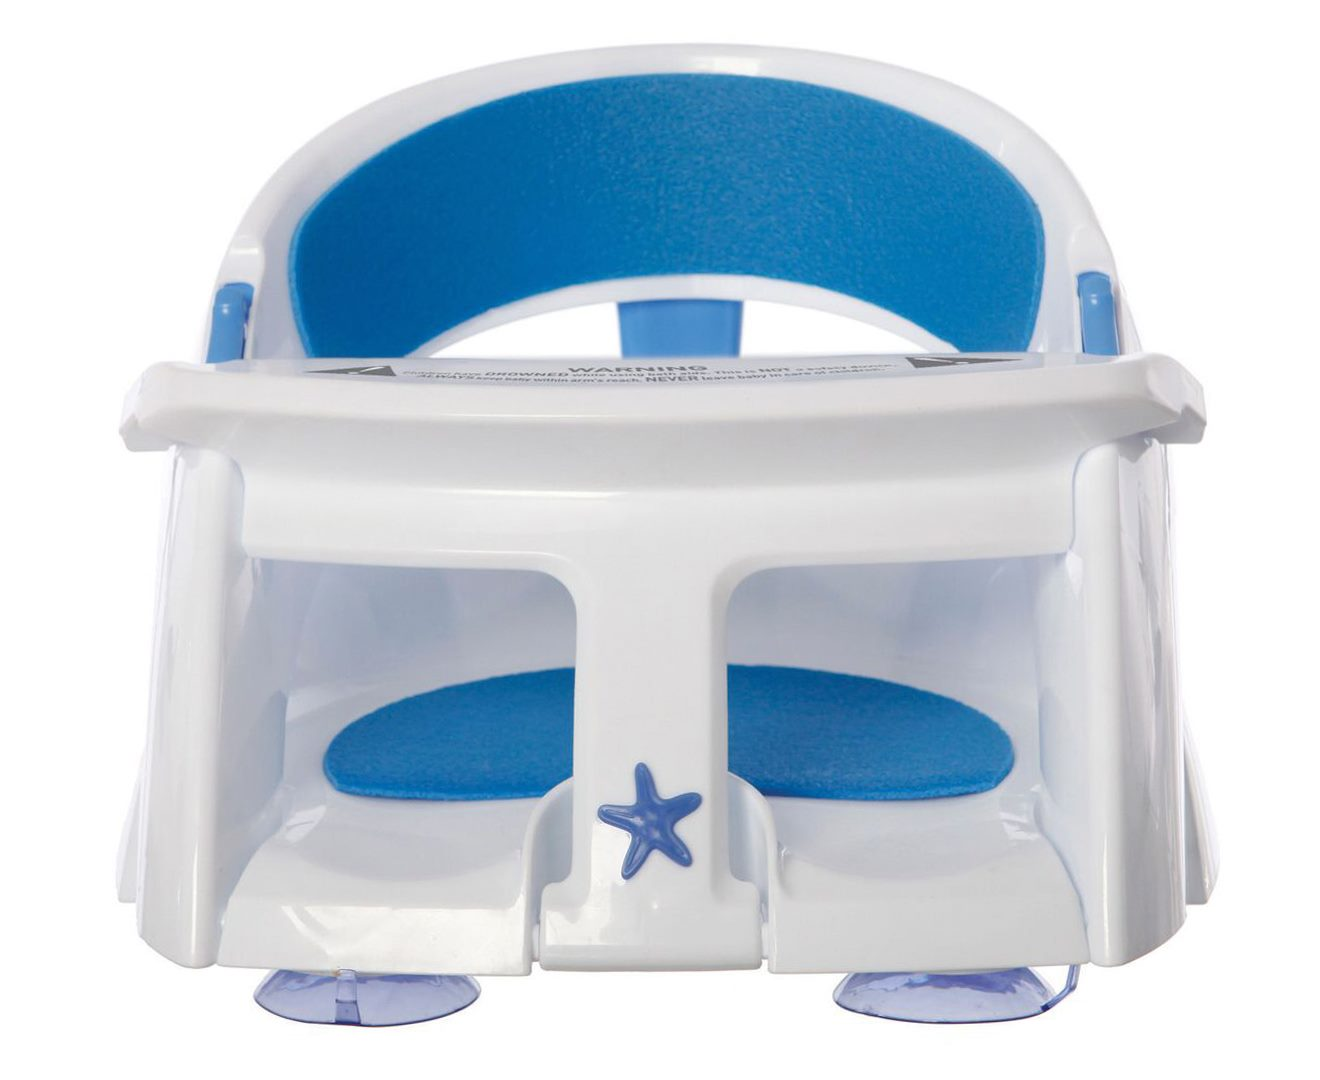 Dreambaby Deluxe Padded Bath Seat Baby Bath Seats | Trade Me